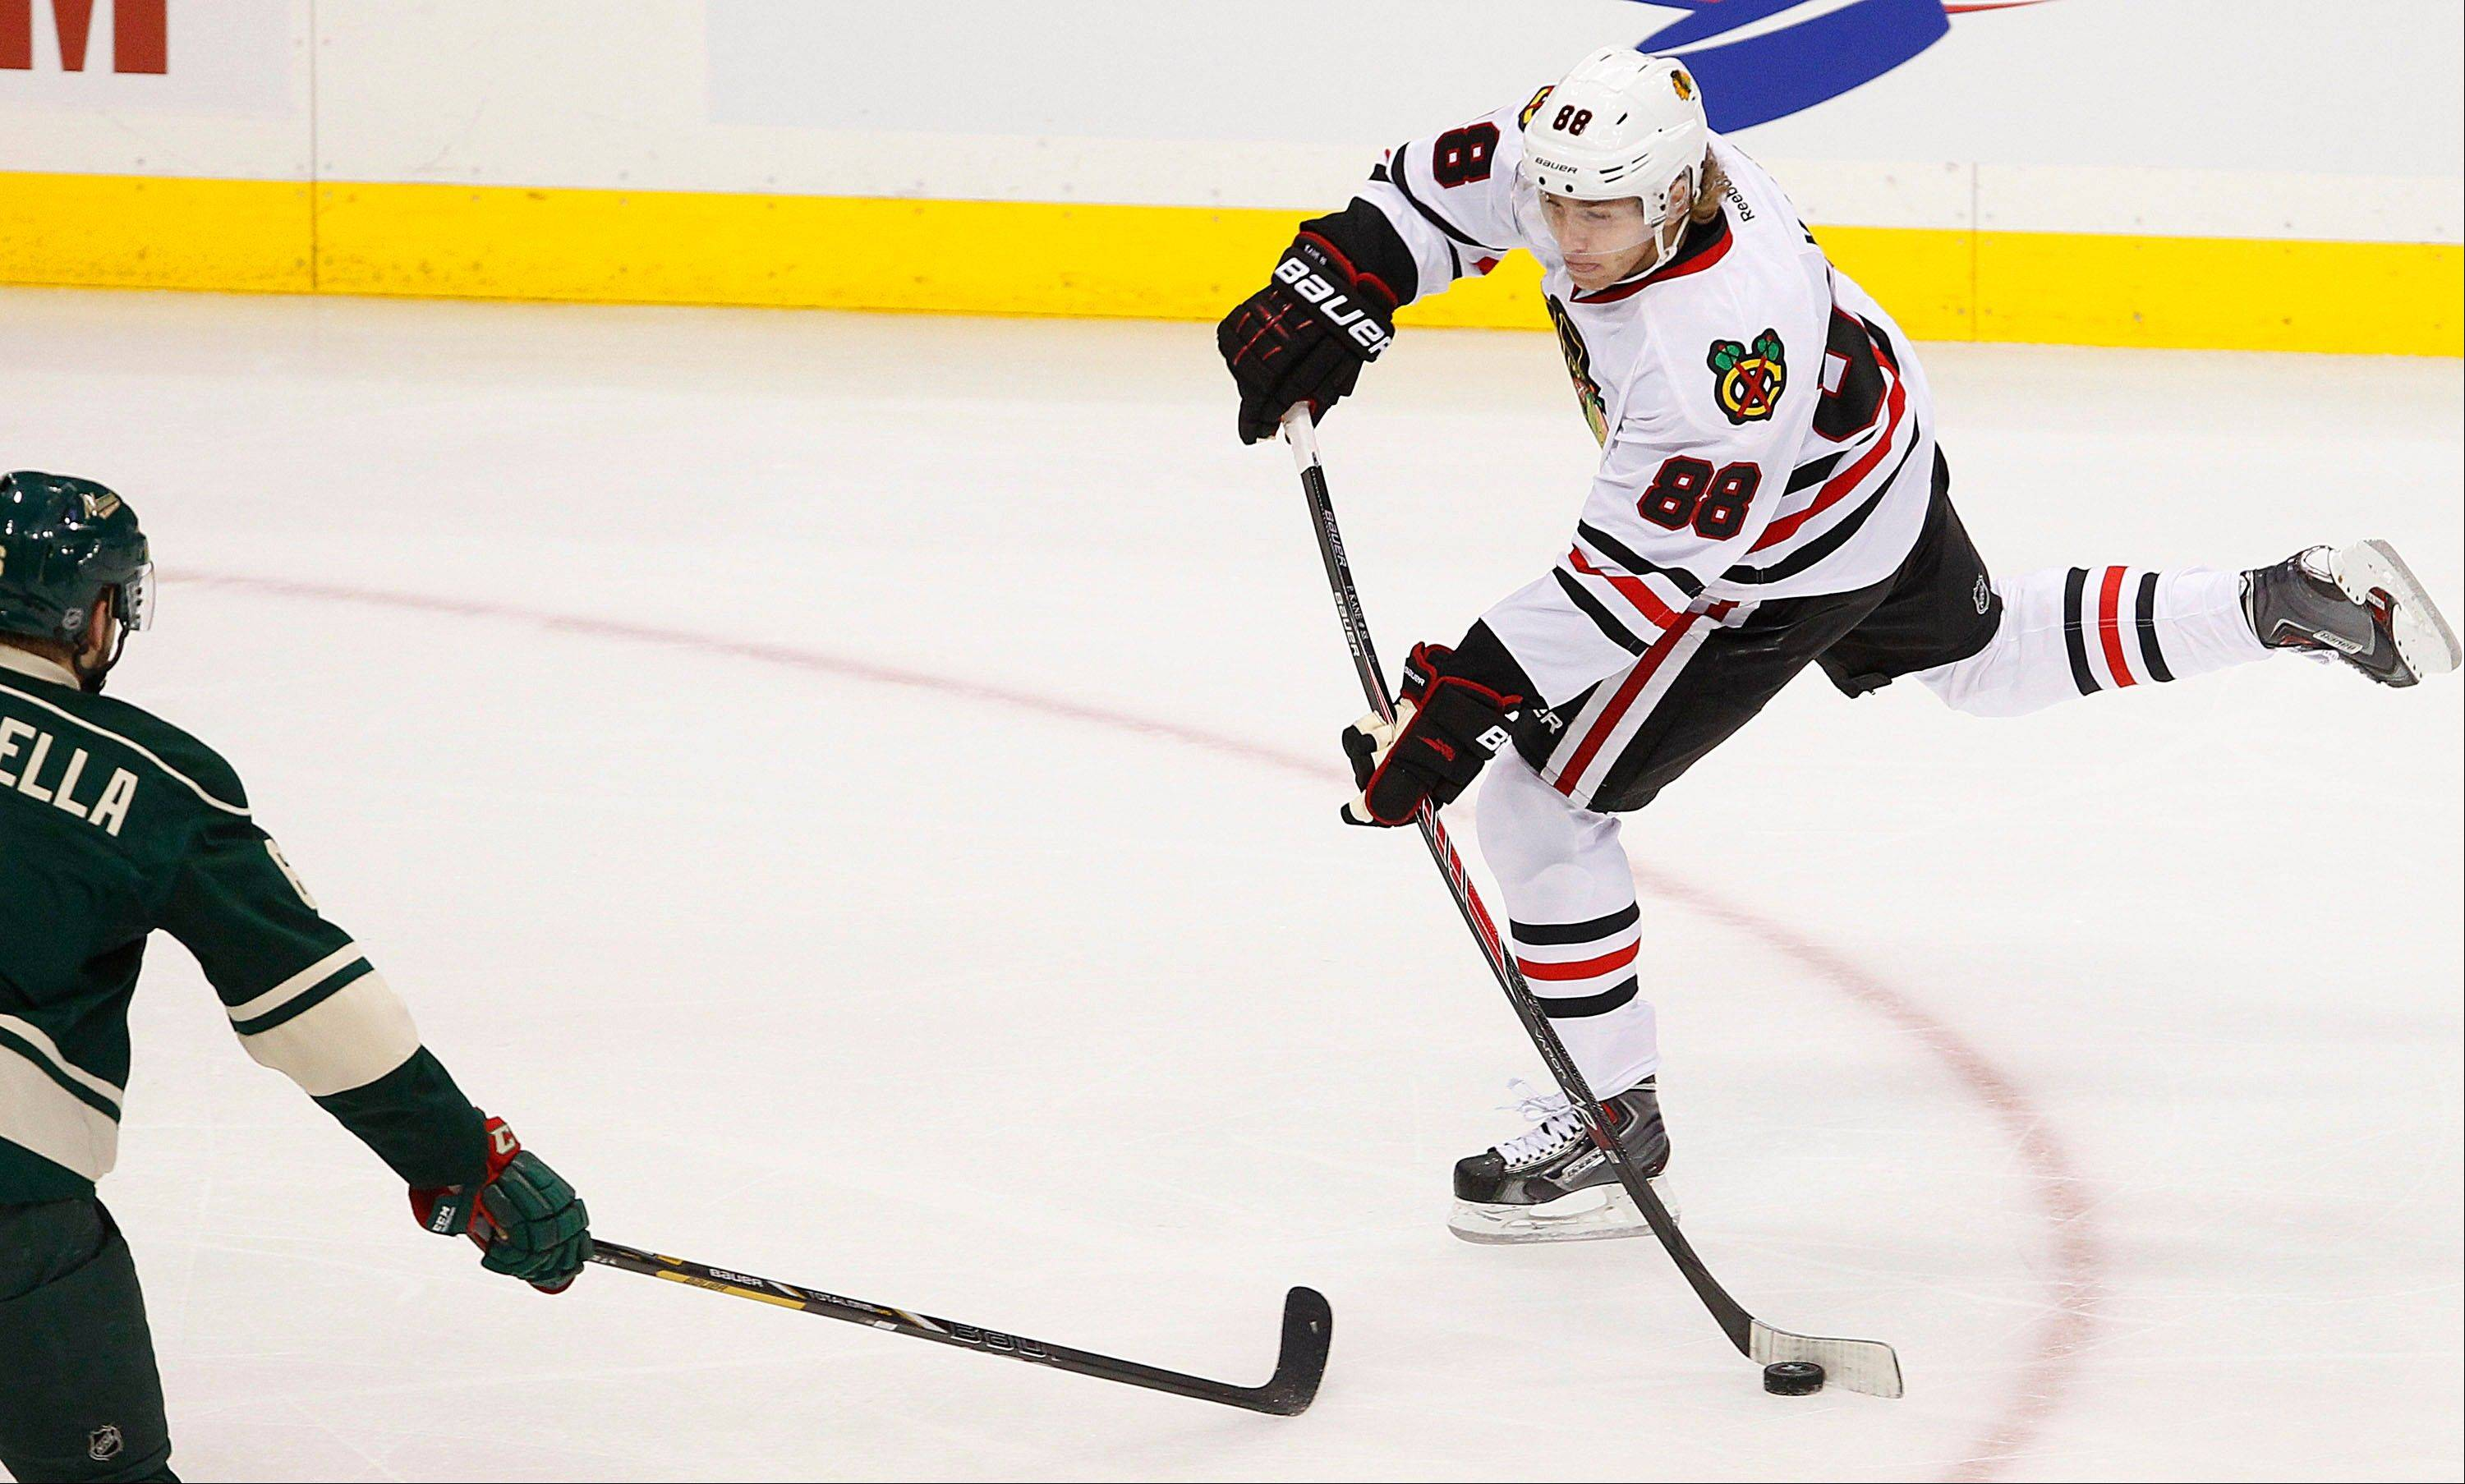 Chicago Blackhawks' Patrick Kane shoots in front of Minnesota Wild's Ryan Sutter in the first period. Minnesota won 3-2 in overtime.